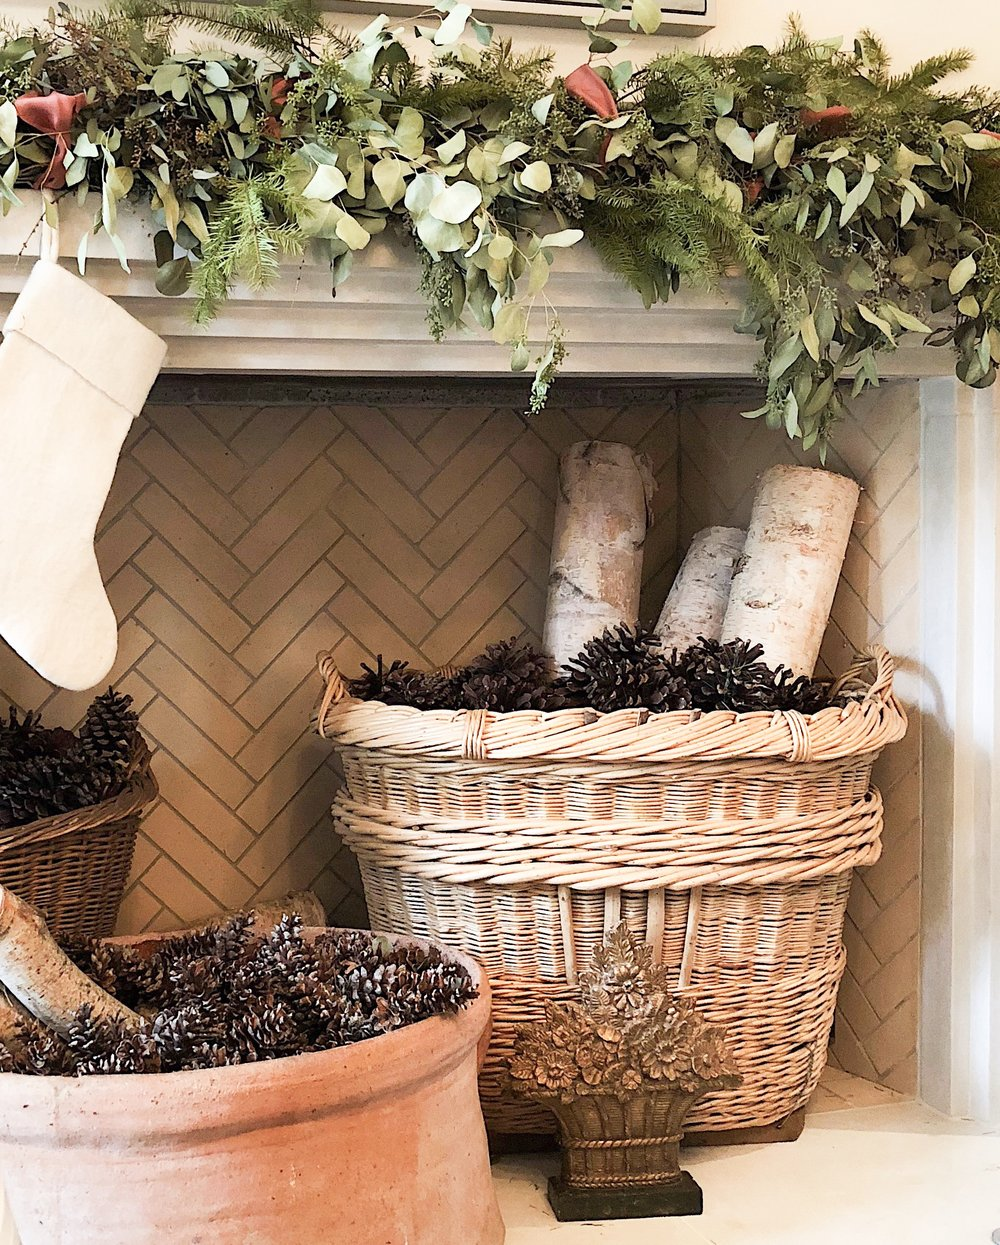 Fill the fireplace - FILL THE (NON-WORKING) FIREPLACEYou could use logs or pine cones if you are in a mountainous area or it's the holidays. But also think books, pumpkins, beach balls, etc. Love this idea of baskets and containers.designer: Lauren DeLoach